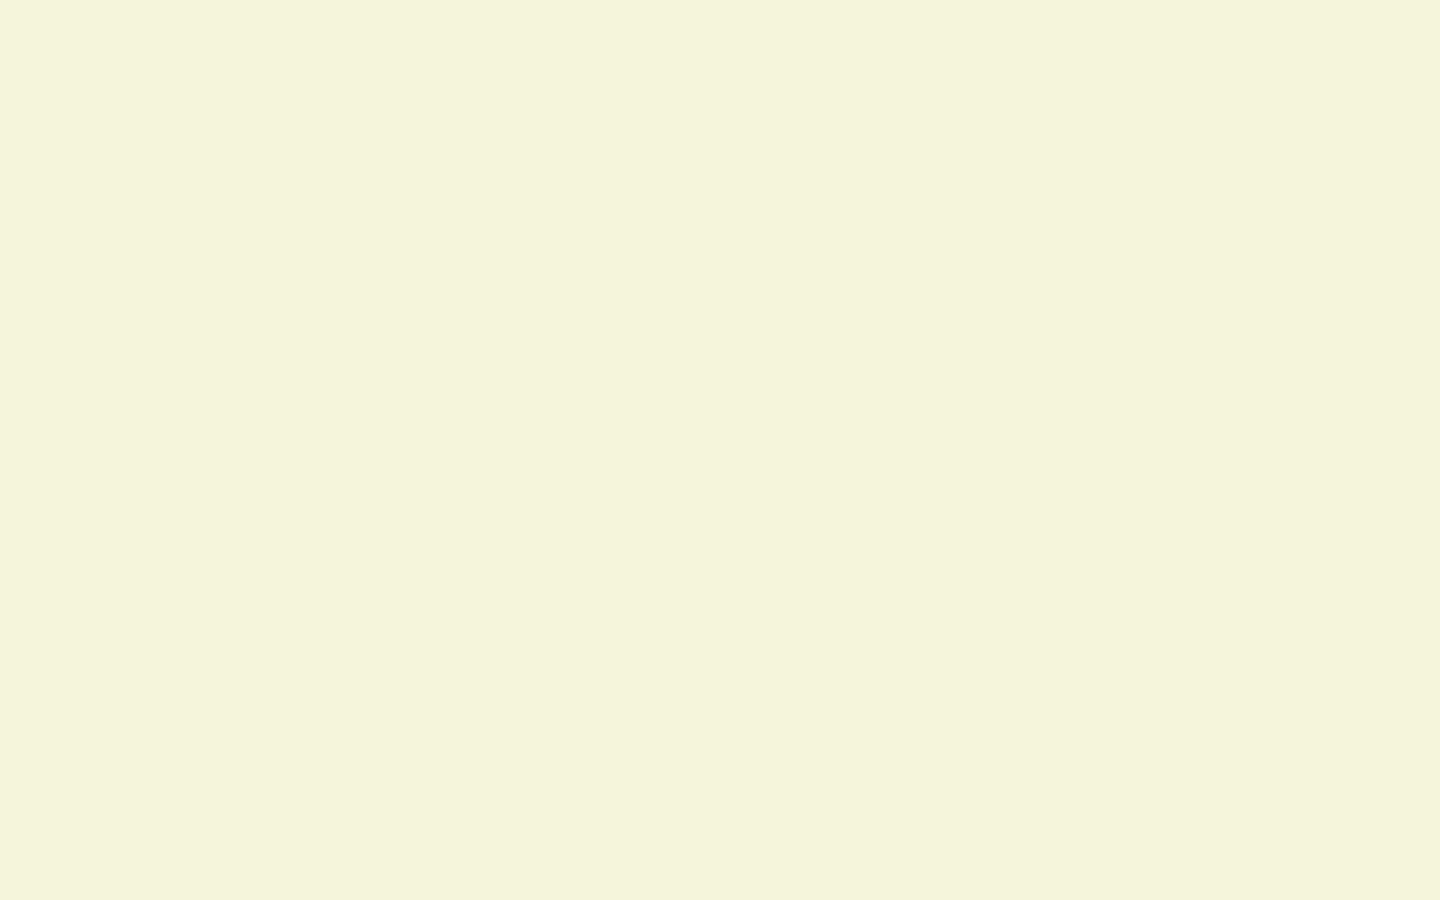 1440x900 Beige Solid Color Background